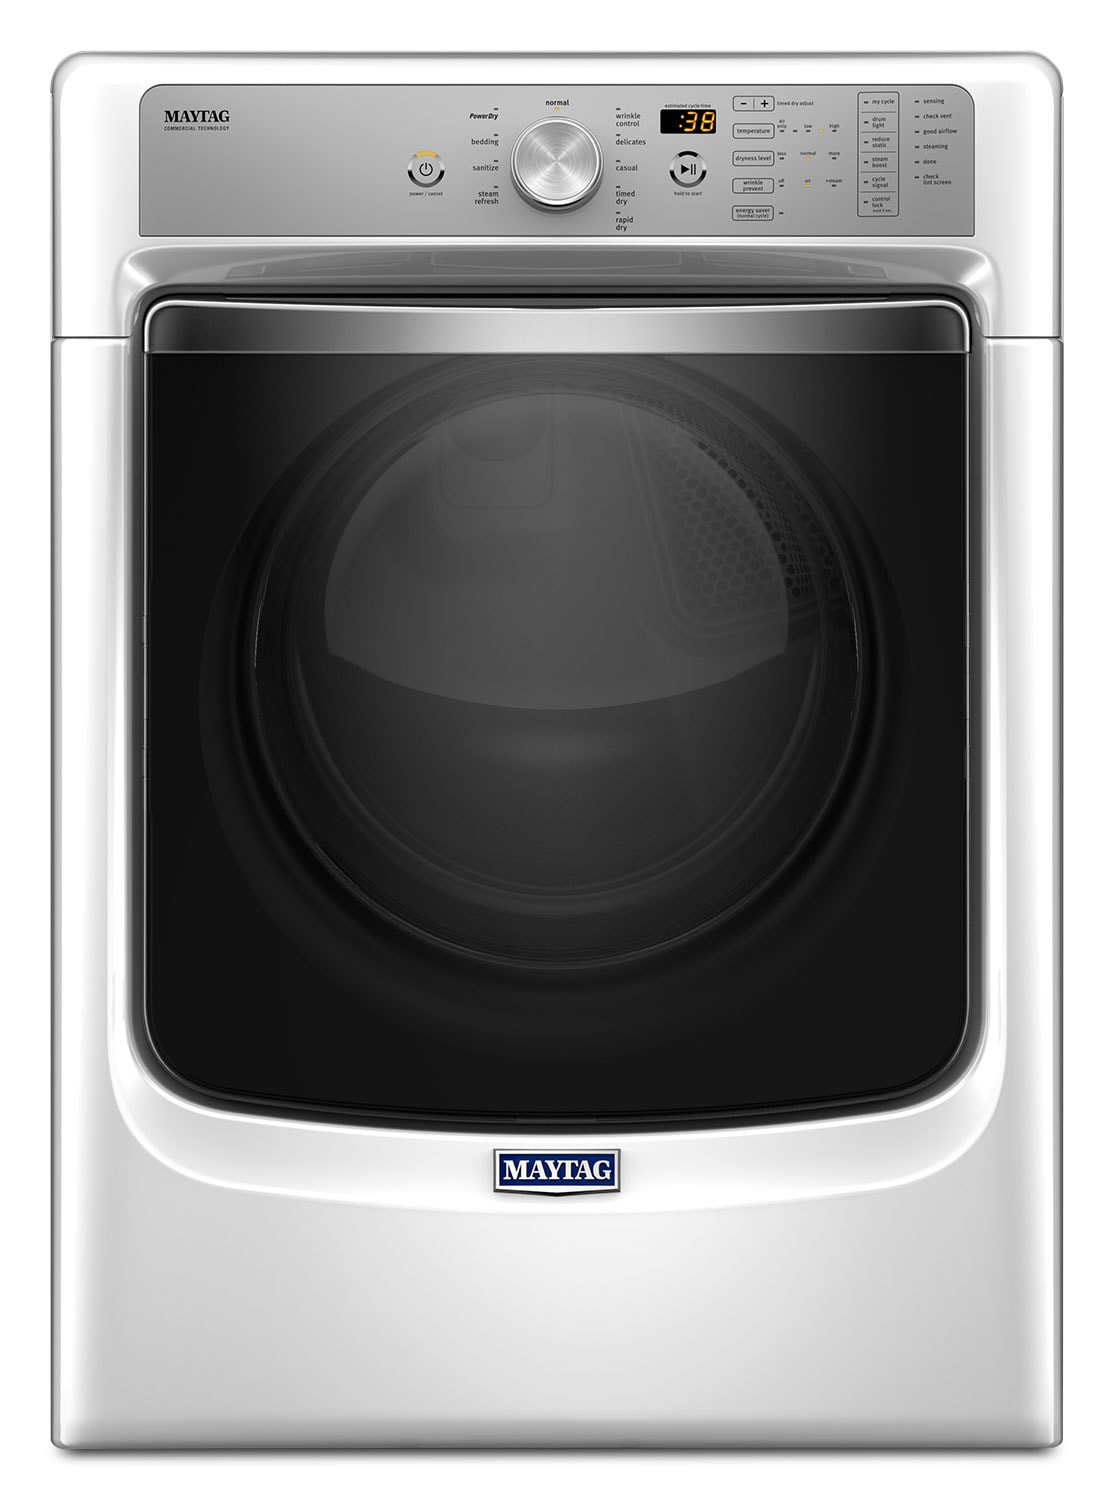 Washers and Dryers - Maytag White Gas Dryer w/ PowerDry System (7.4 Cu. Ft.) - MGD8200FW